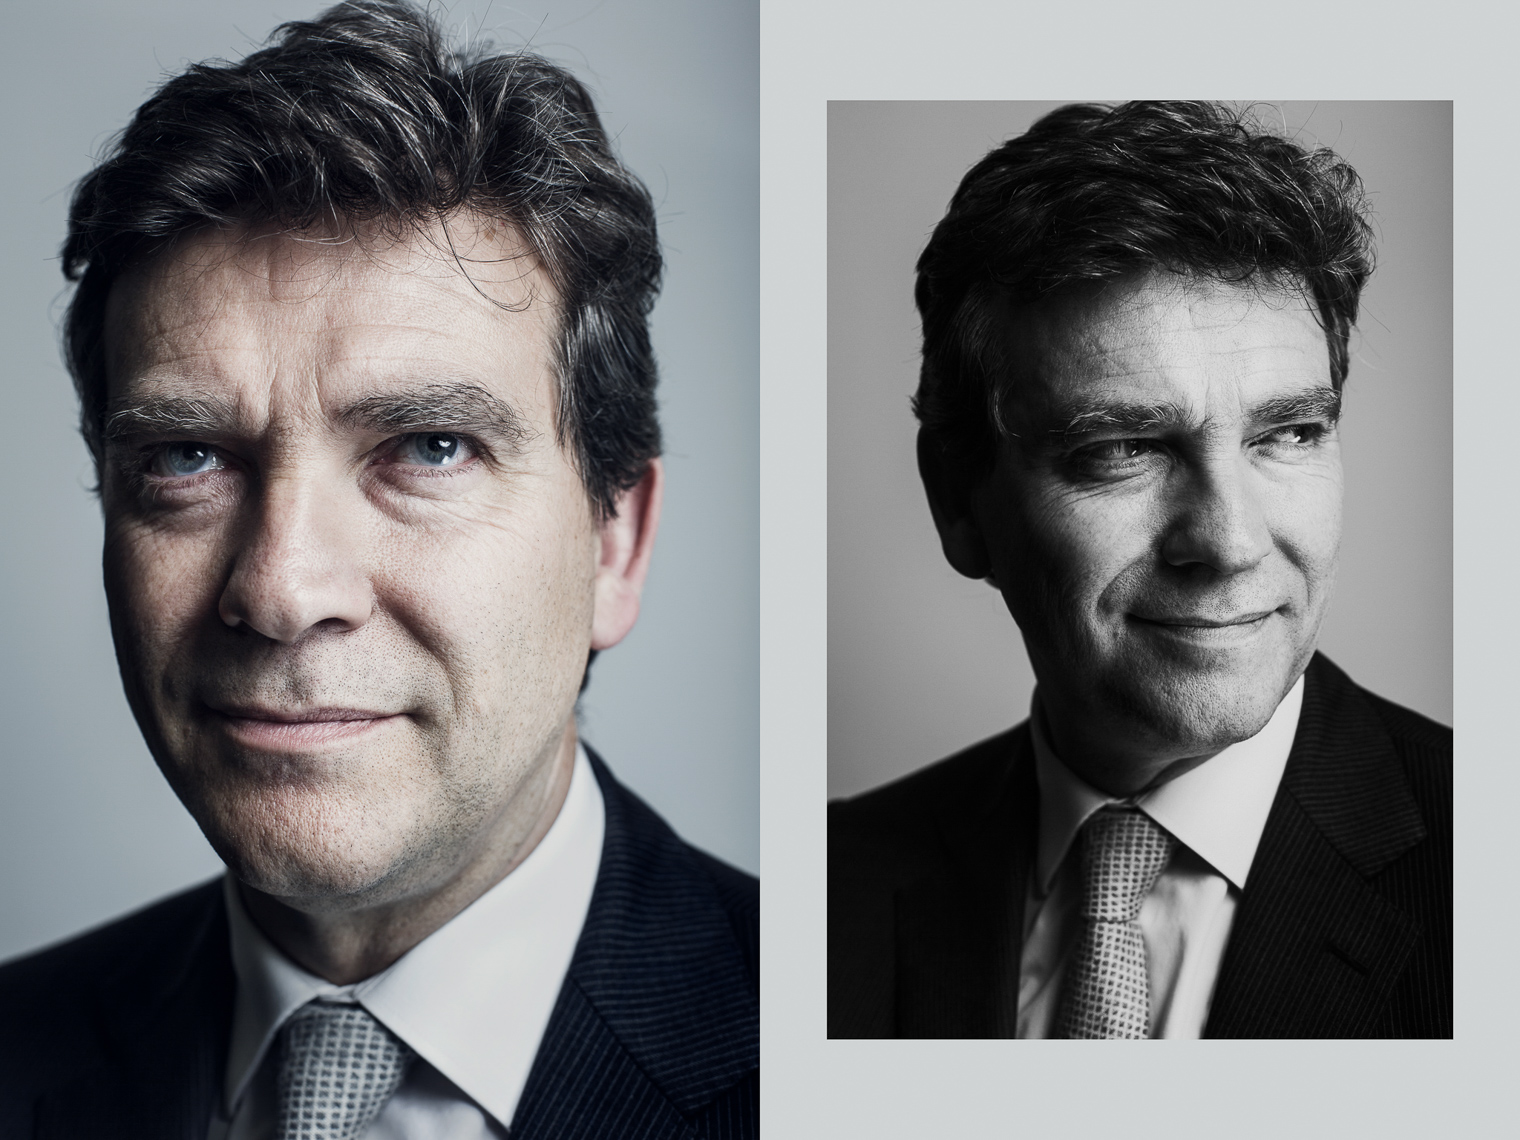 03-20140707-Arnaud-Montebourg-4-Capital-37068-Edit-Edit